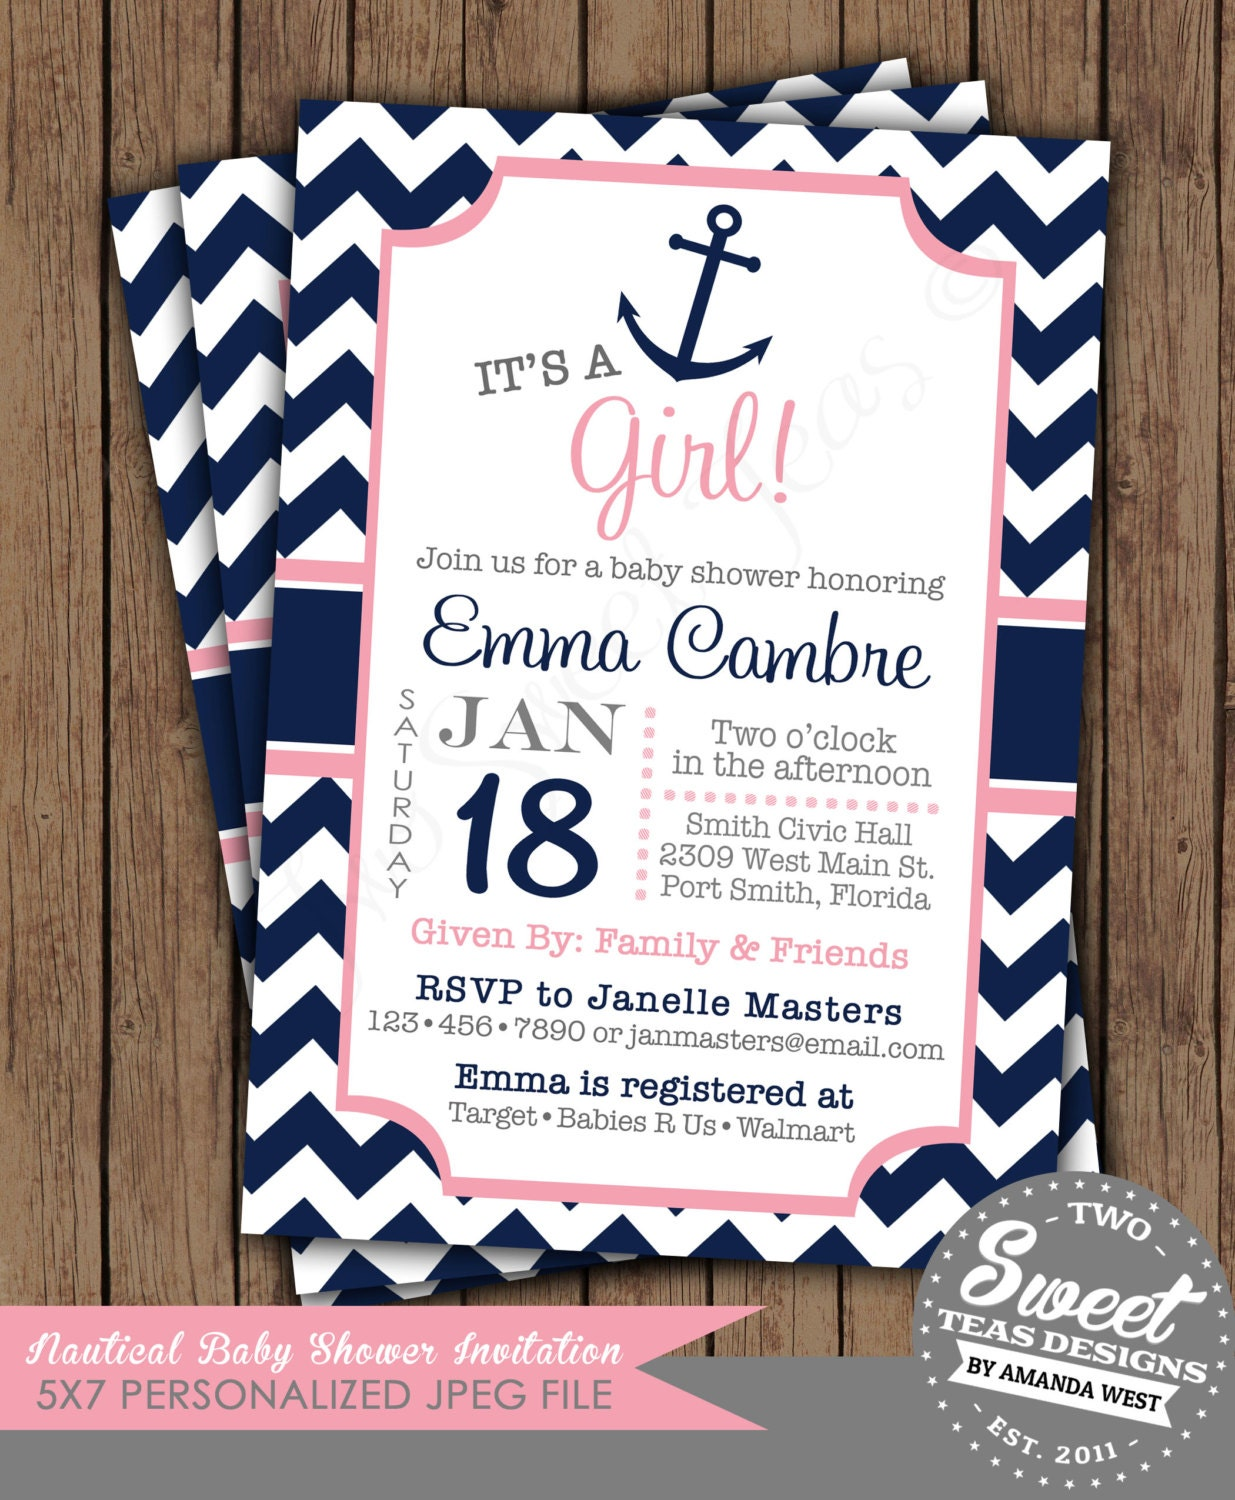 Nautical Baby Shower Invitations Etsy with good invitation layout